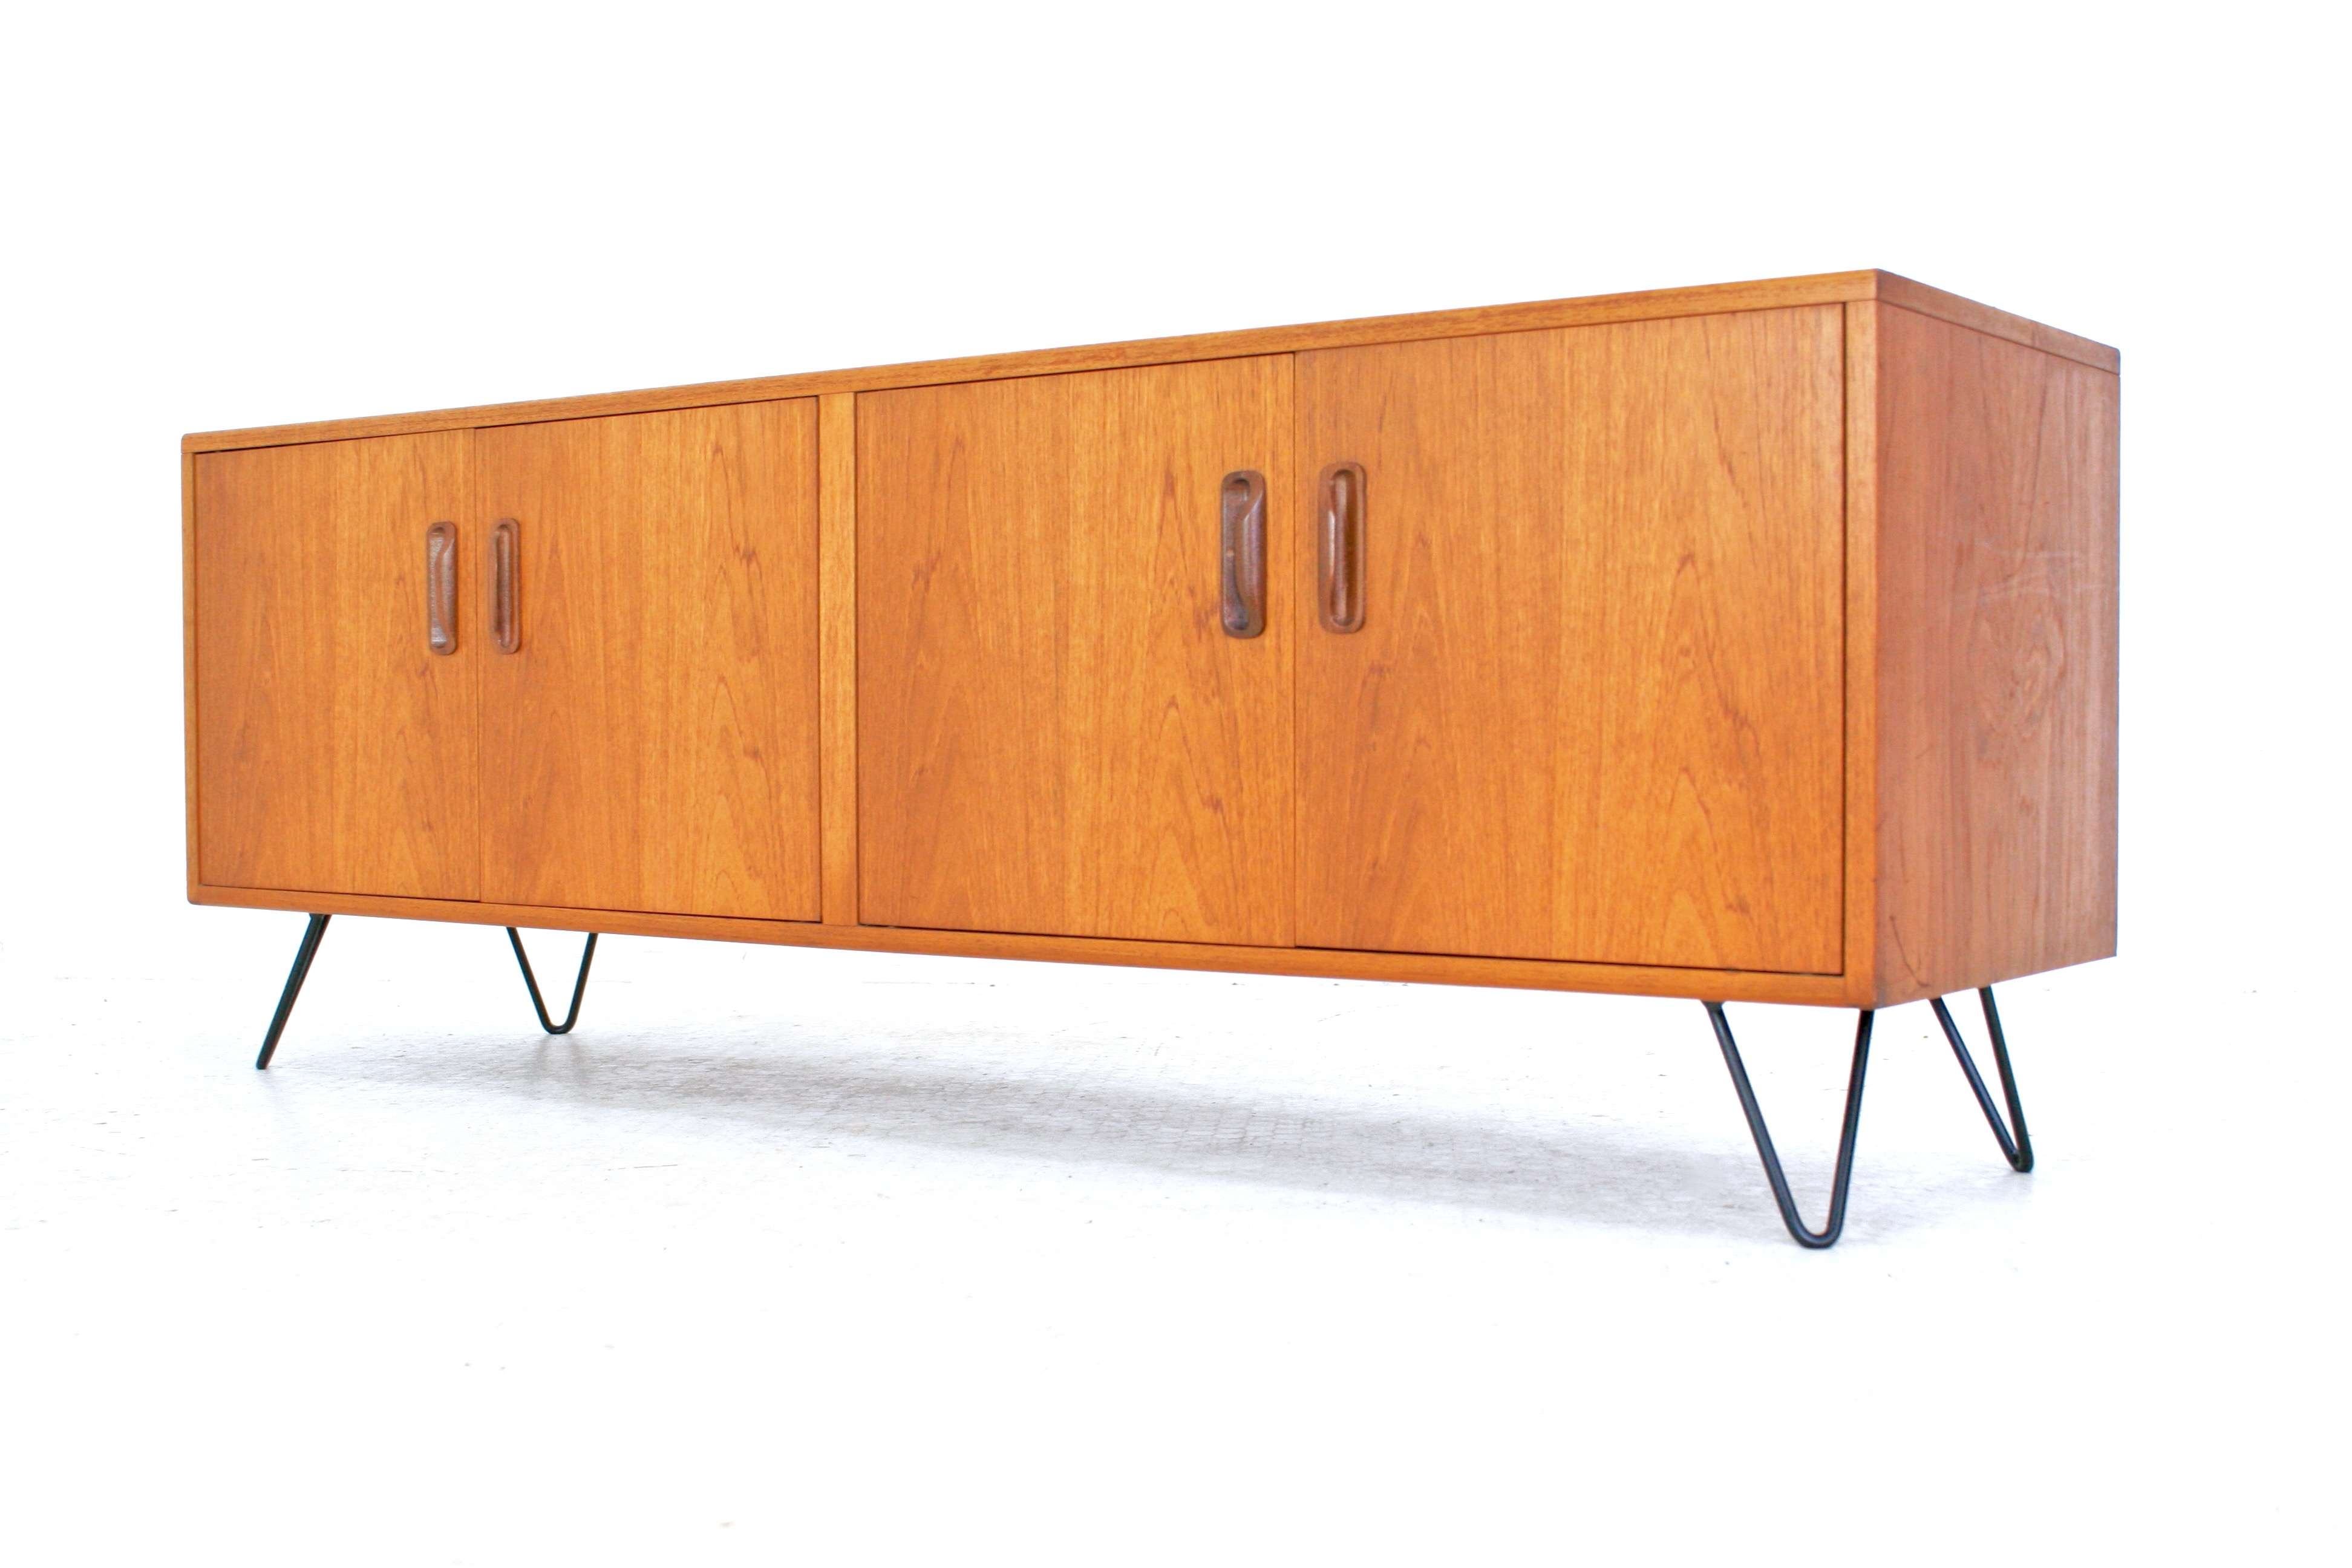 Vinterior | Vintage, Midcentury, Antique & Design Furniture With Regard To G Plan Sideboards (View 20 of 20)